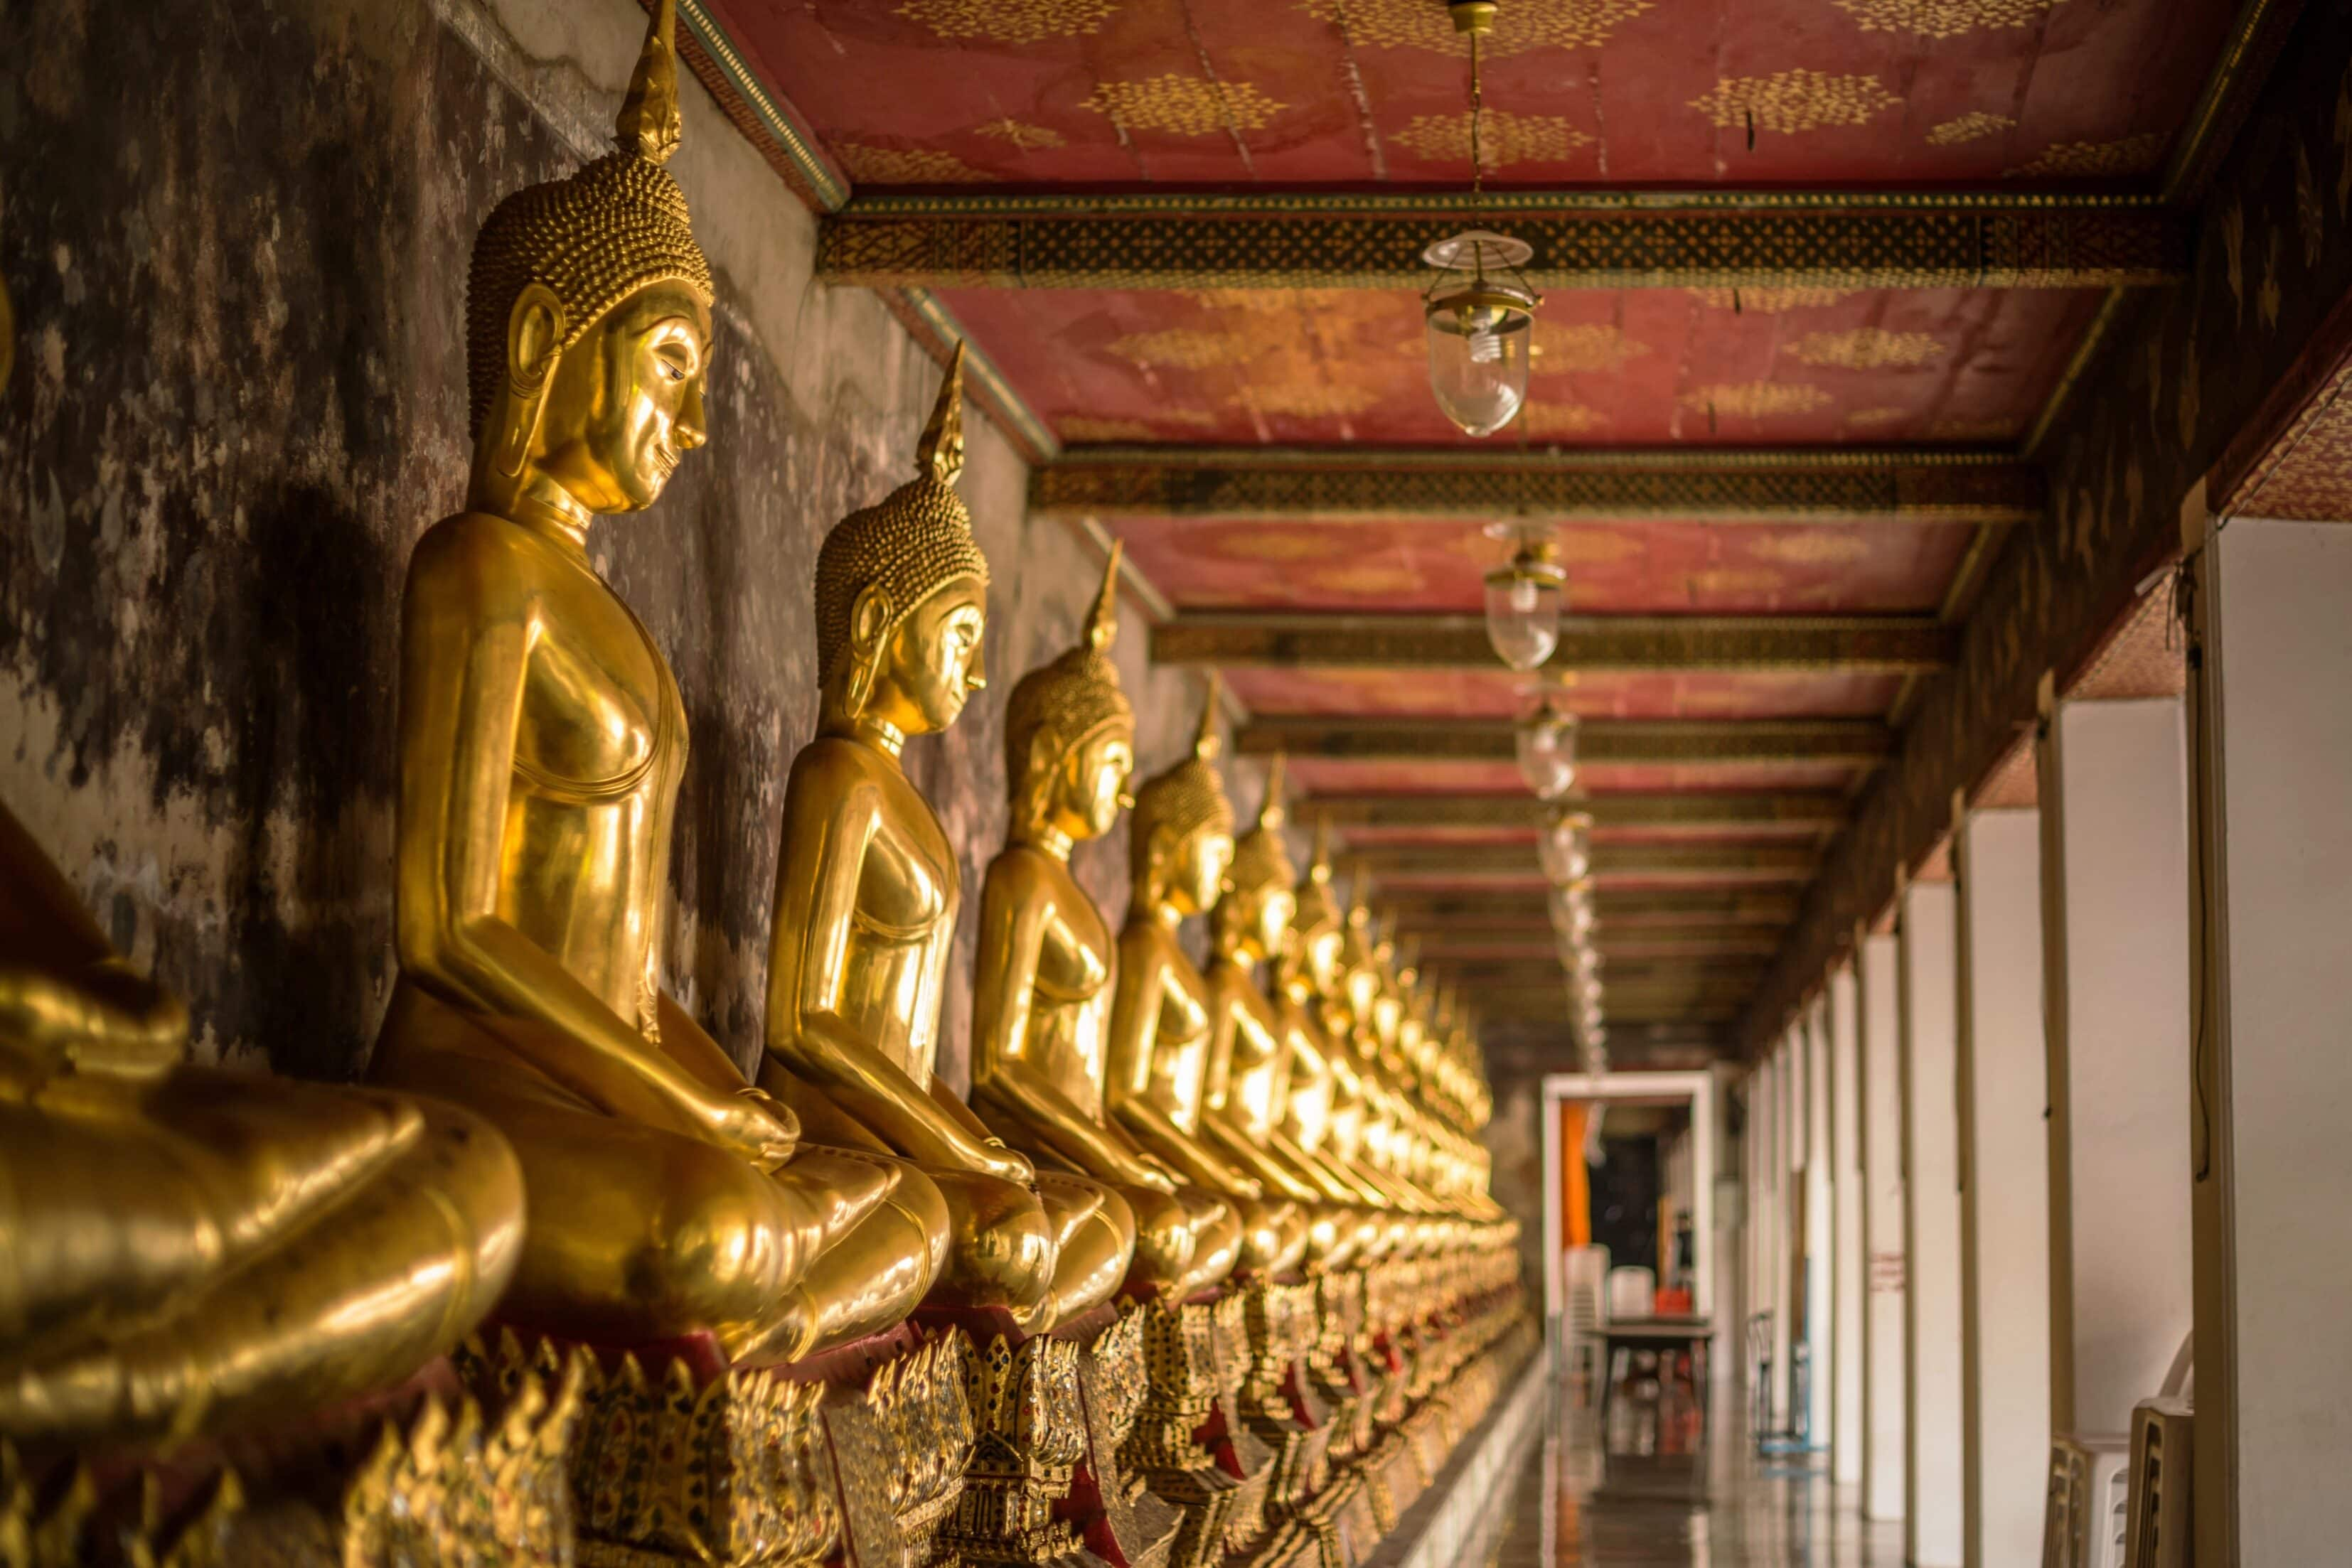 A row of golden buddhas inside a temple